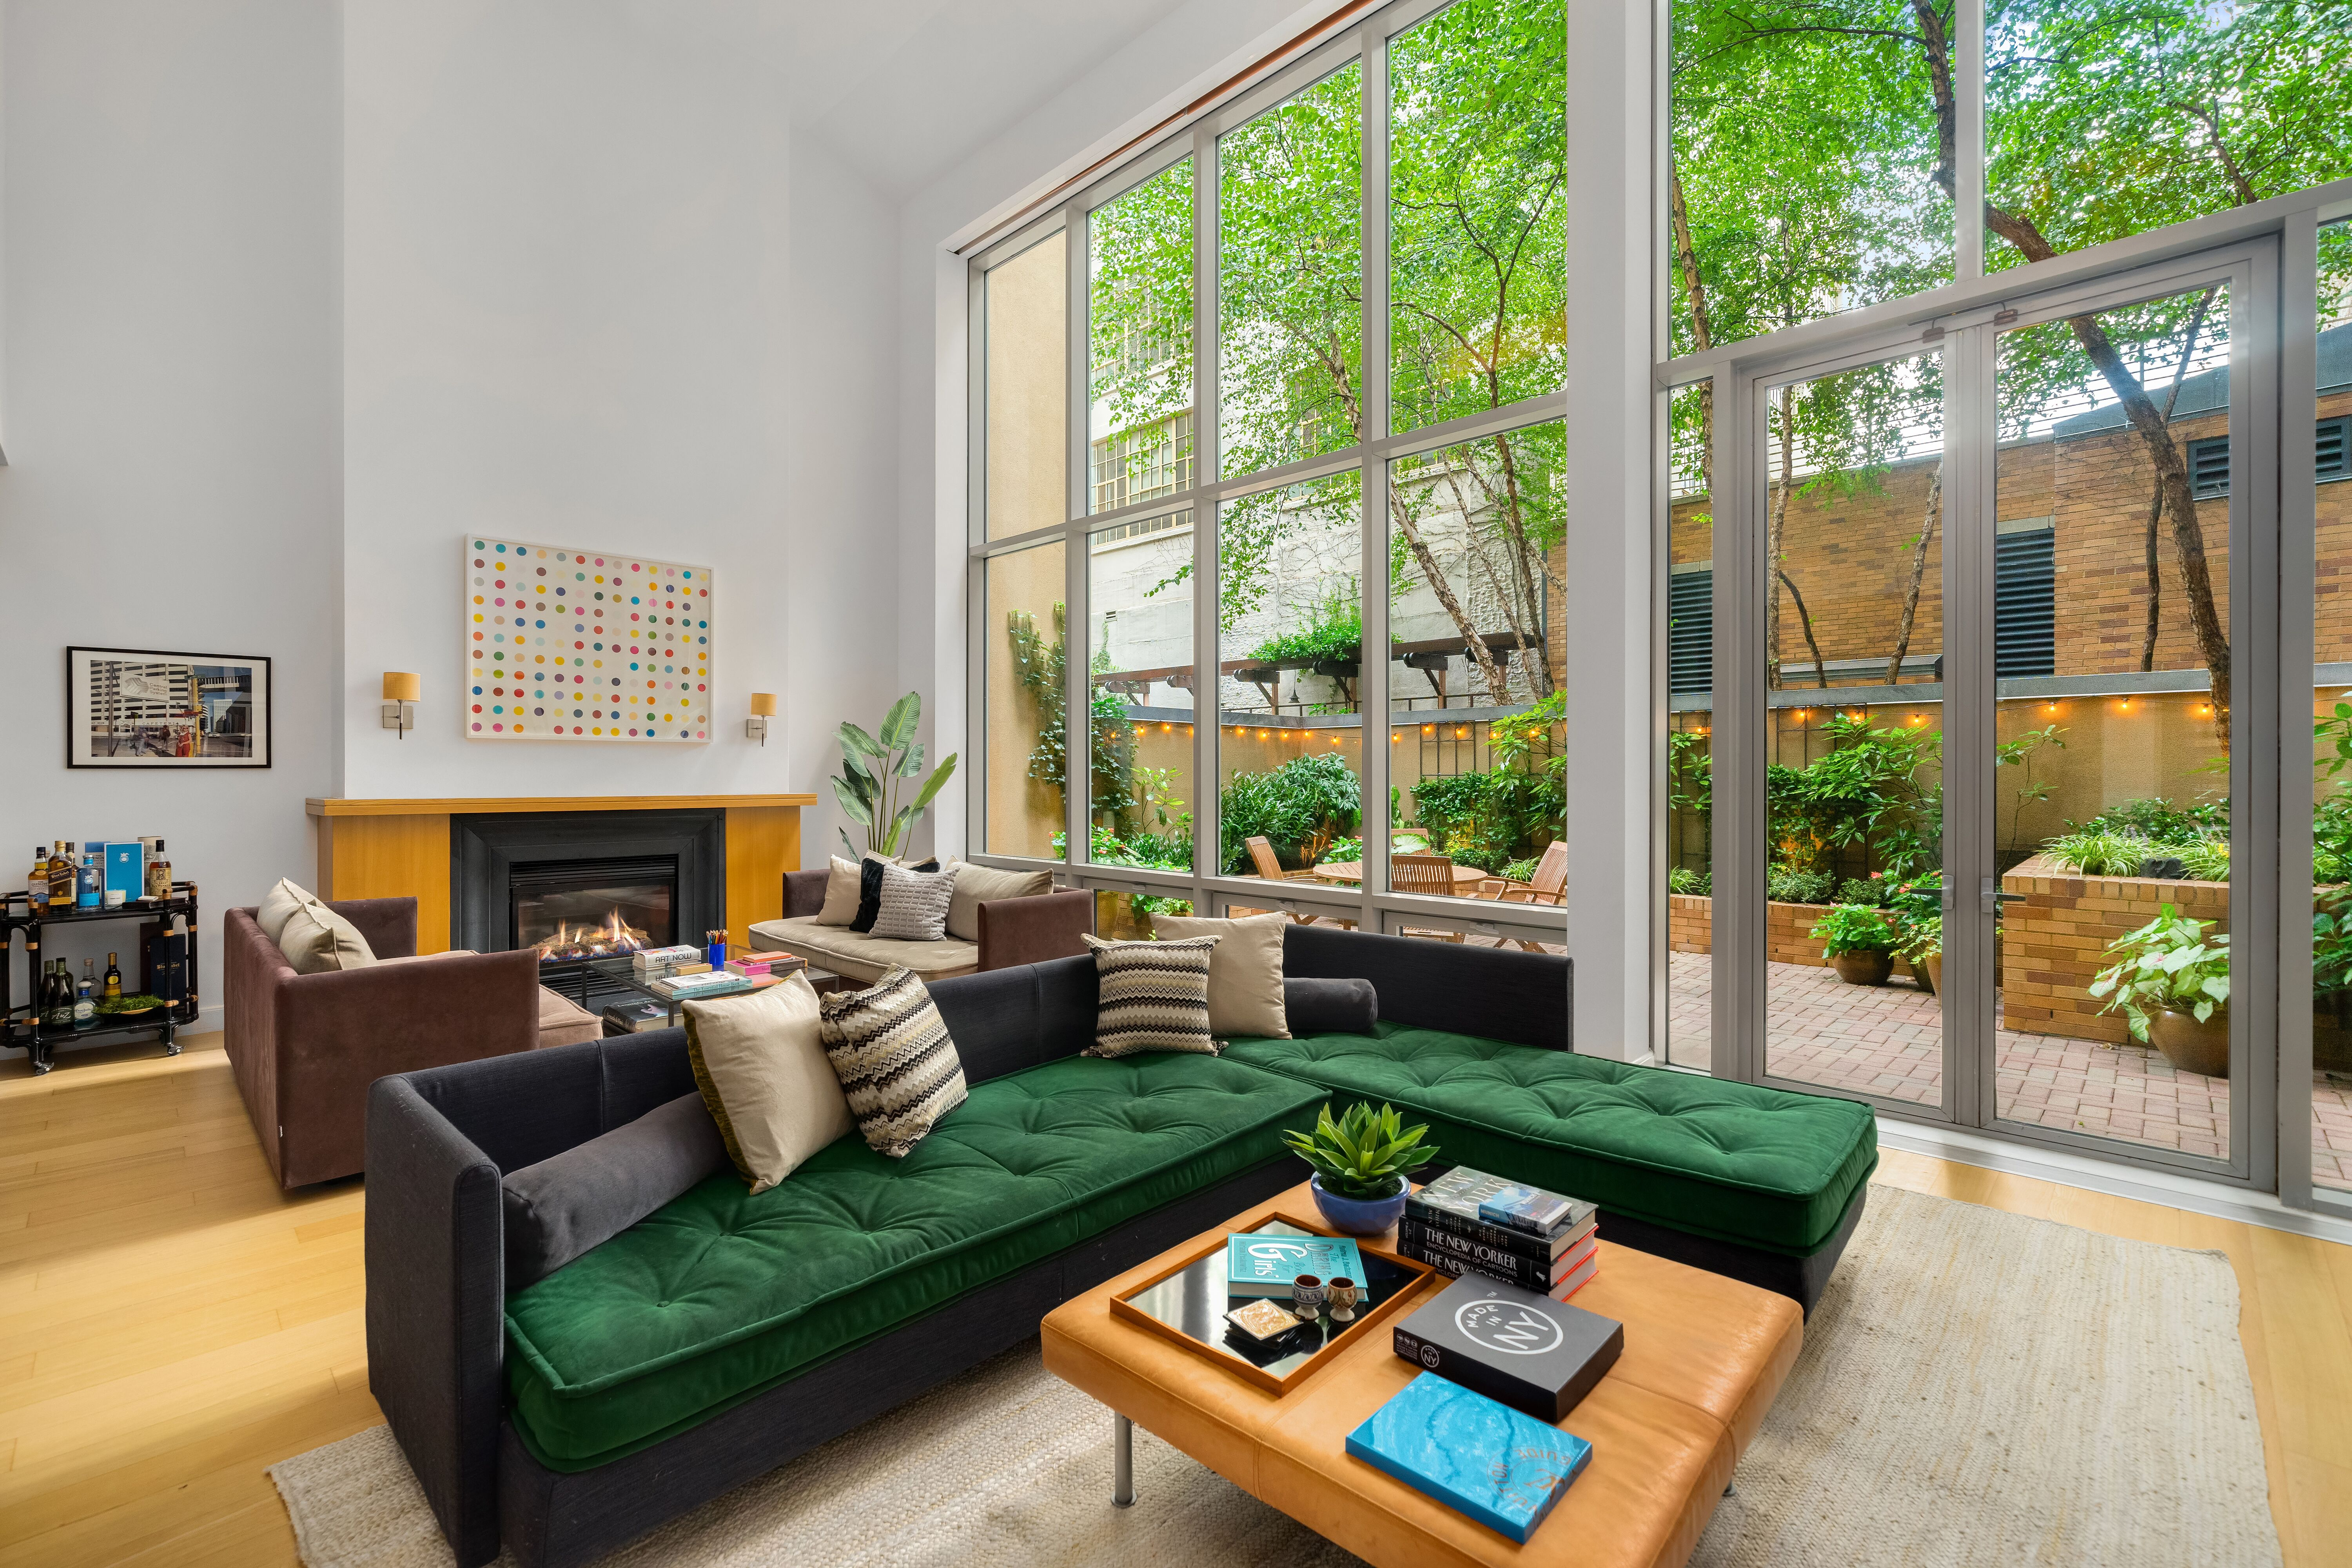 'Who Wants to Be a Millionaire' producer's New York townhouse up for sale